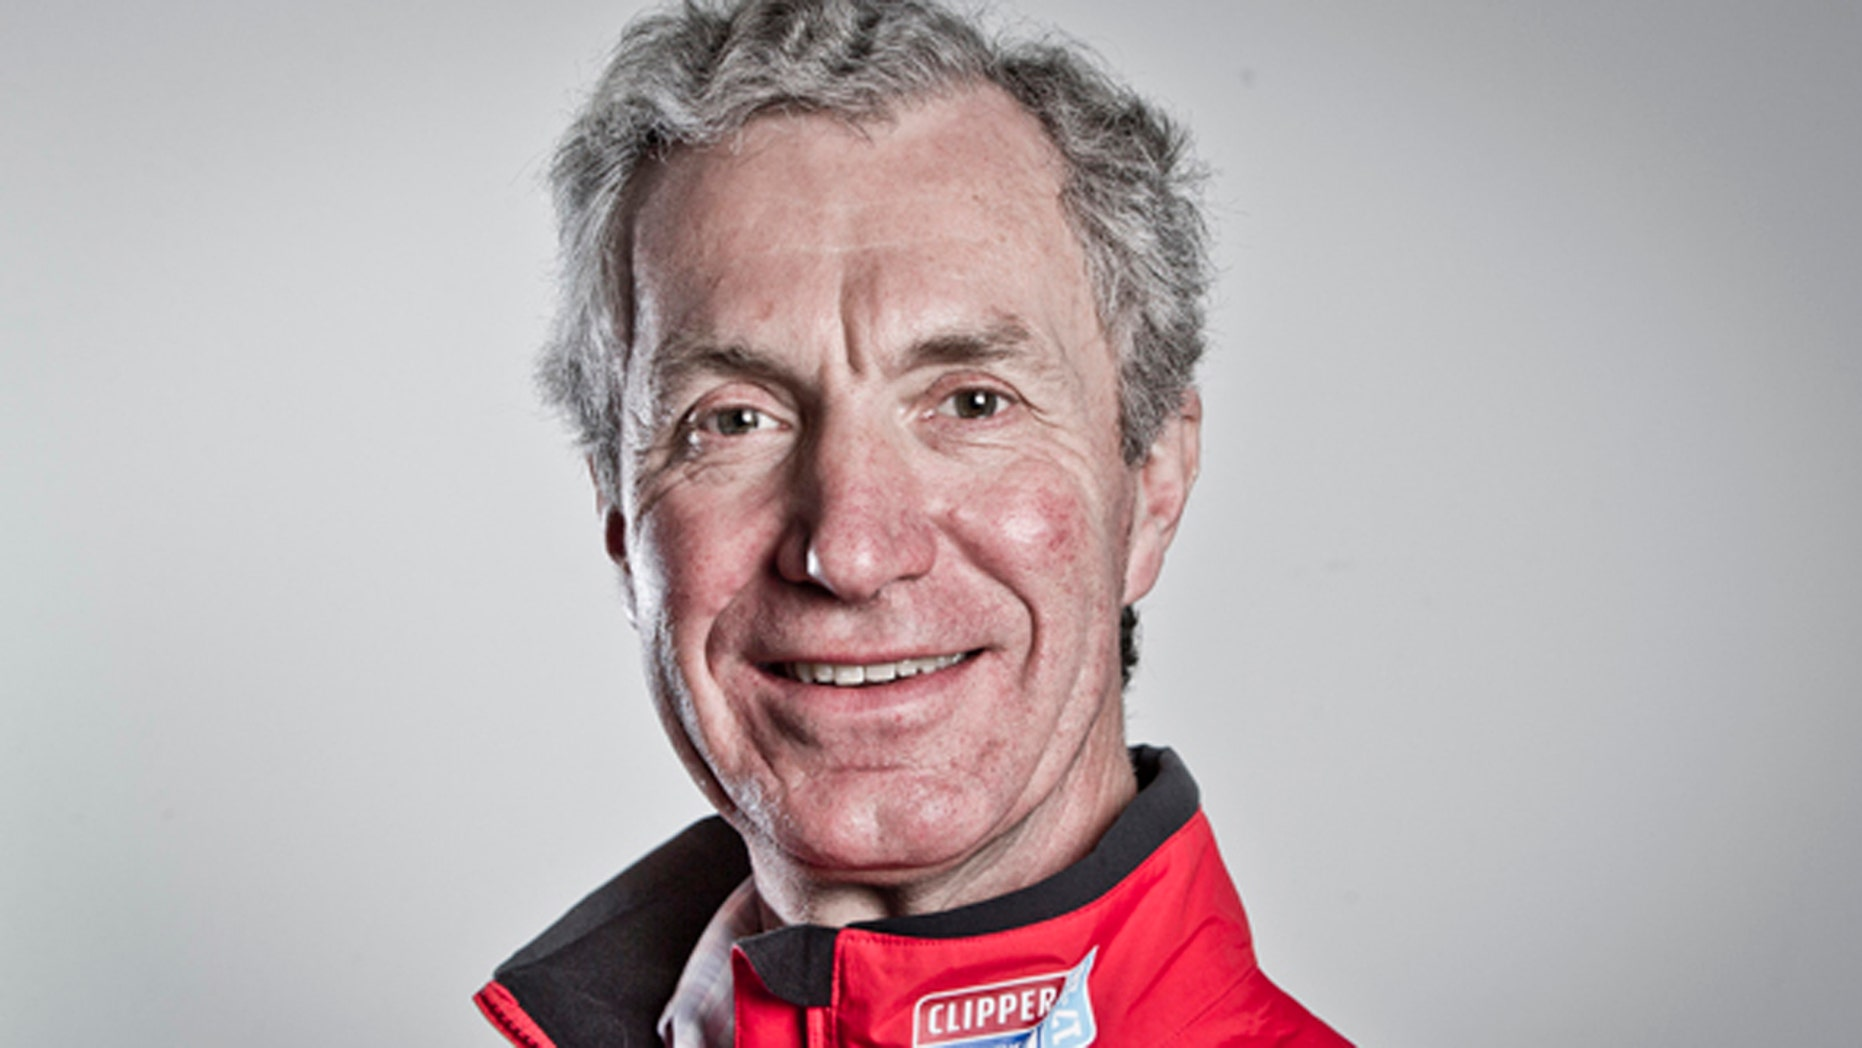 Simon Speirs died Saturday competing in the Clipper Round The World yacht race.